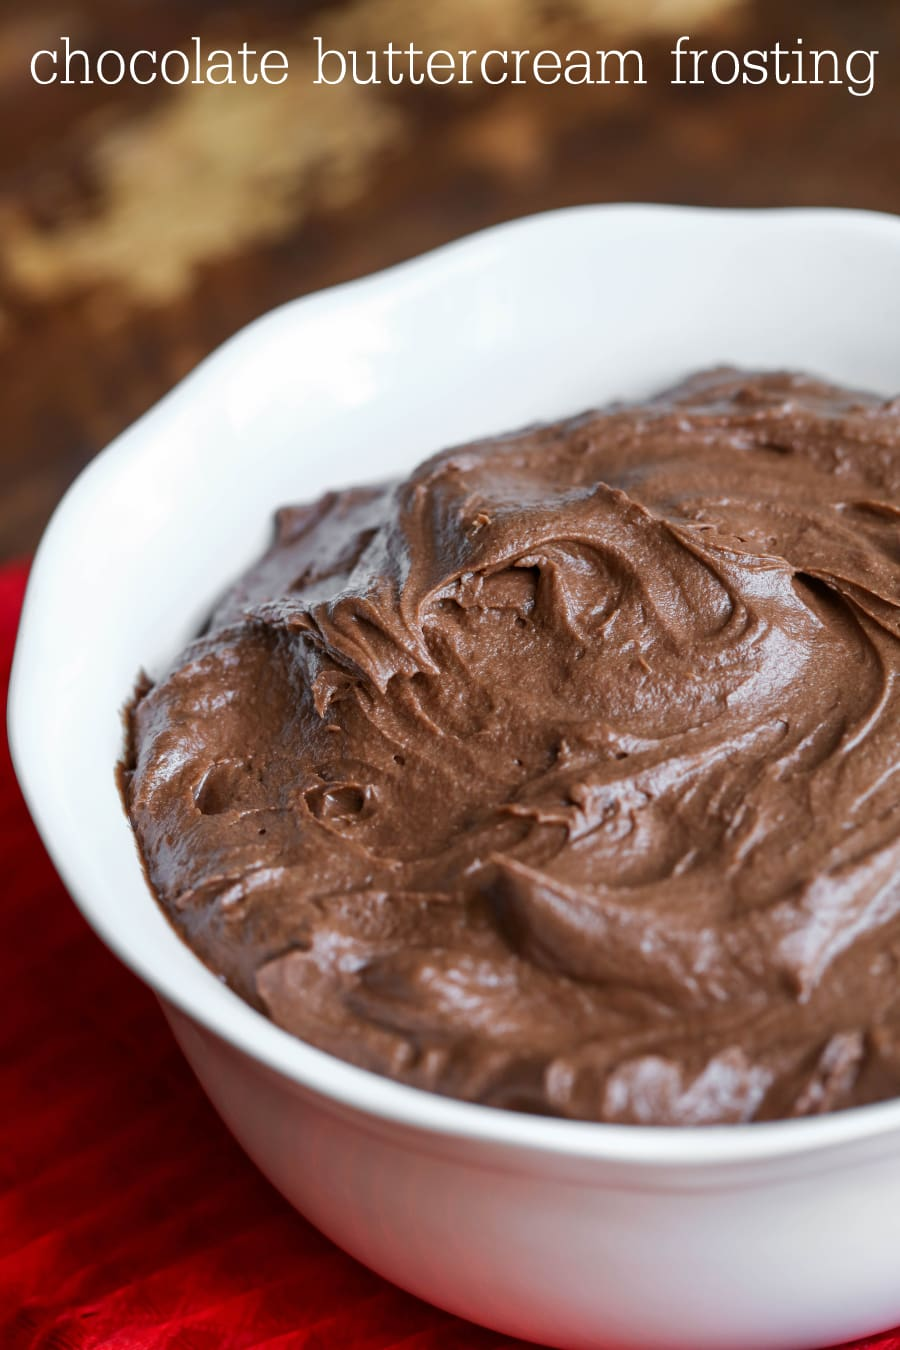 Homemade Chocolate Buttercream frosting - so easy and so delicious!